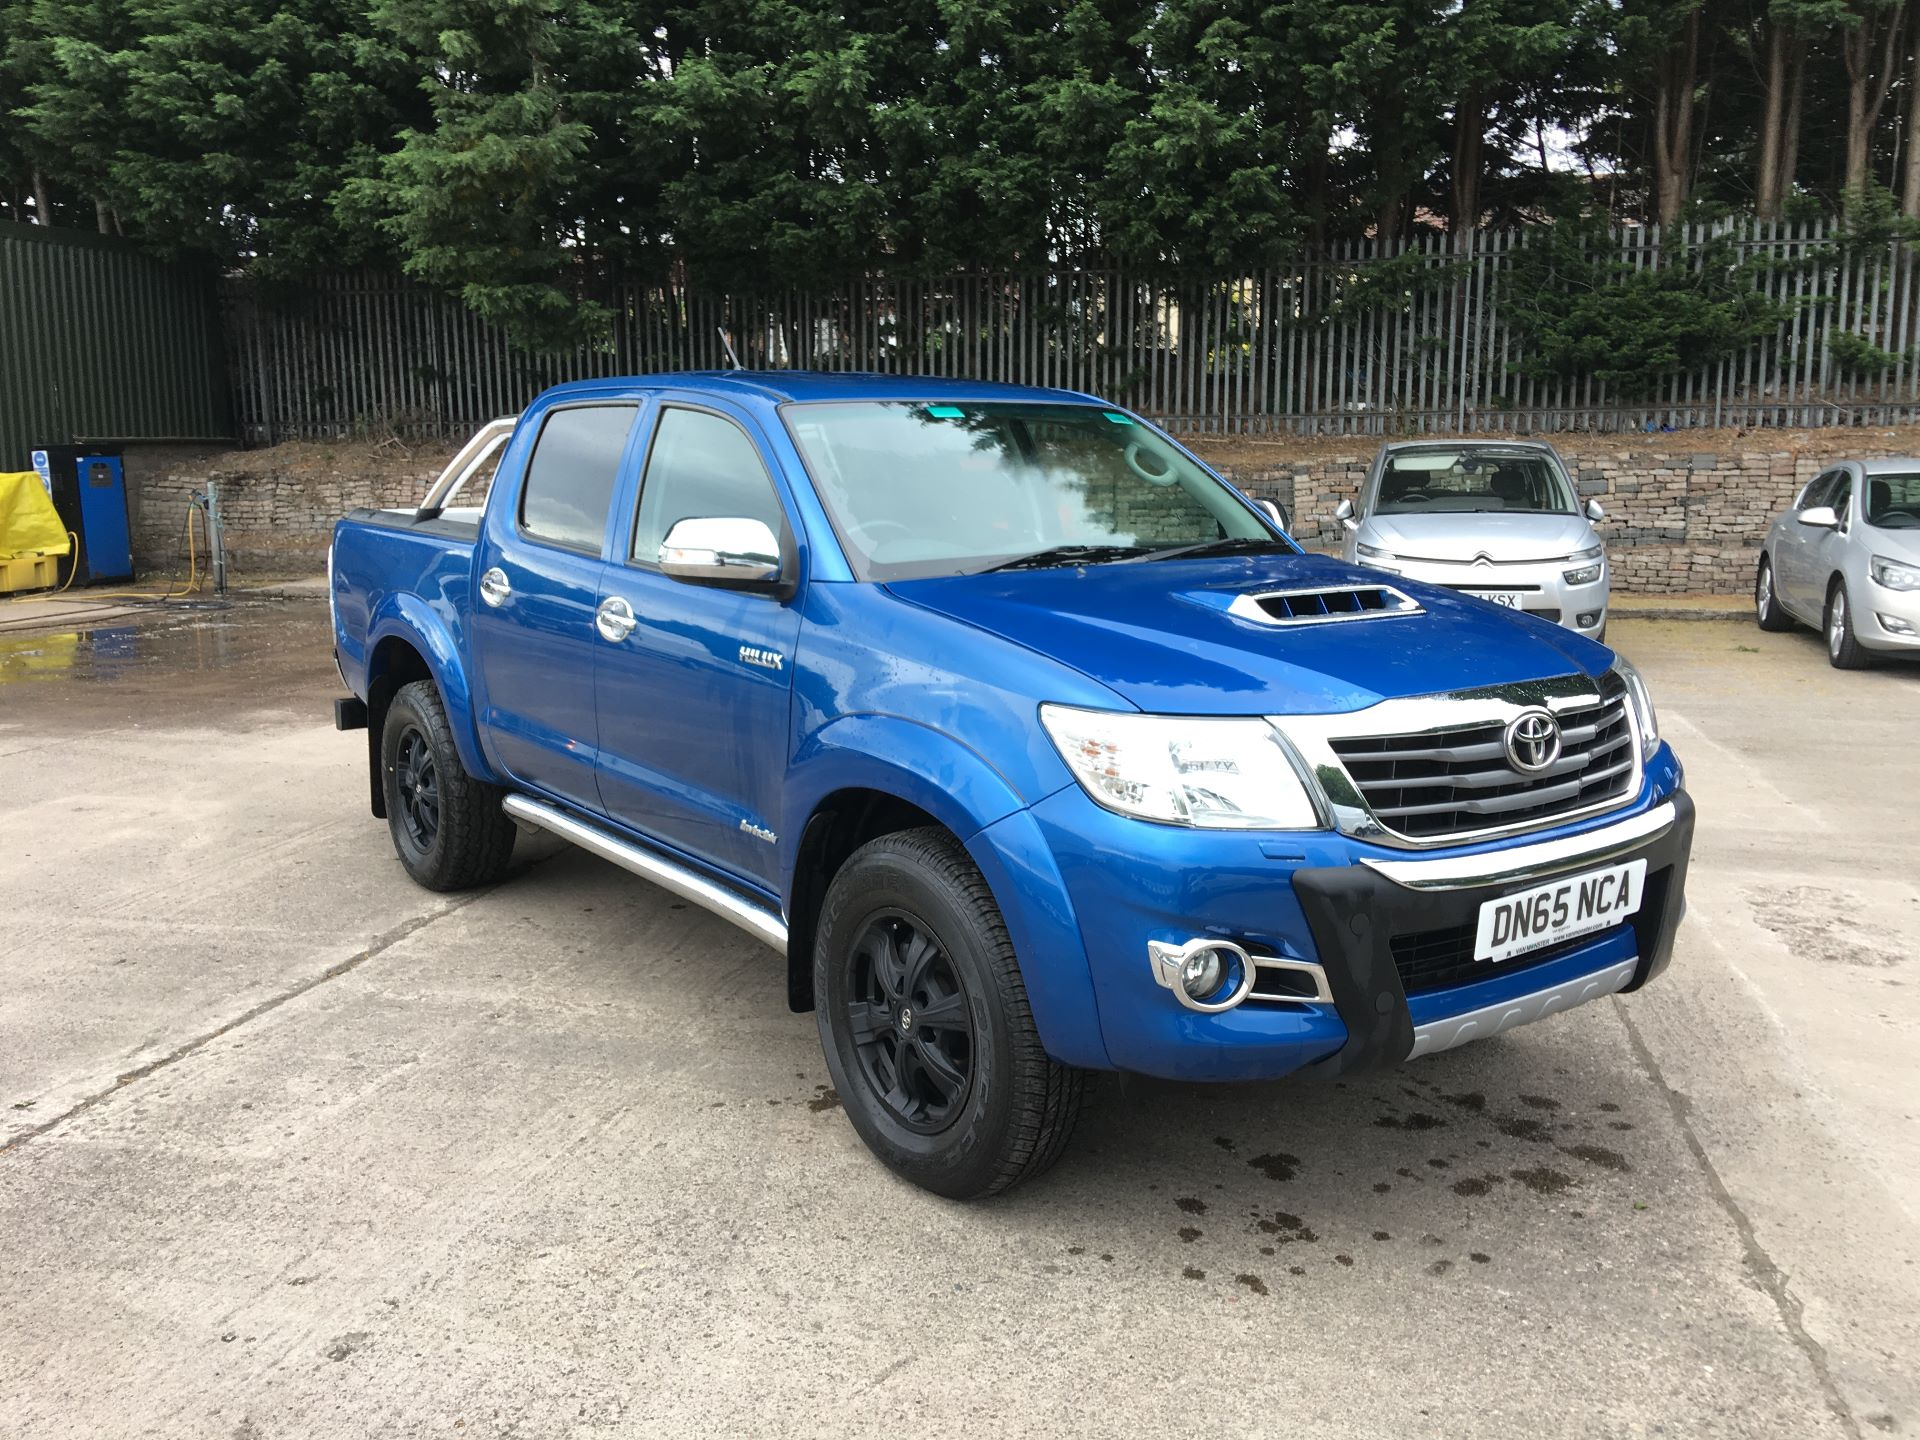 2016 Toyota Hilux INVINCIBLE X DOUBLE CAB PICK UP 3.0 D-4D 171PS 4WD AUTO (DN65NCA)